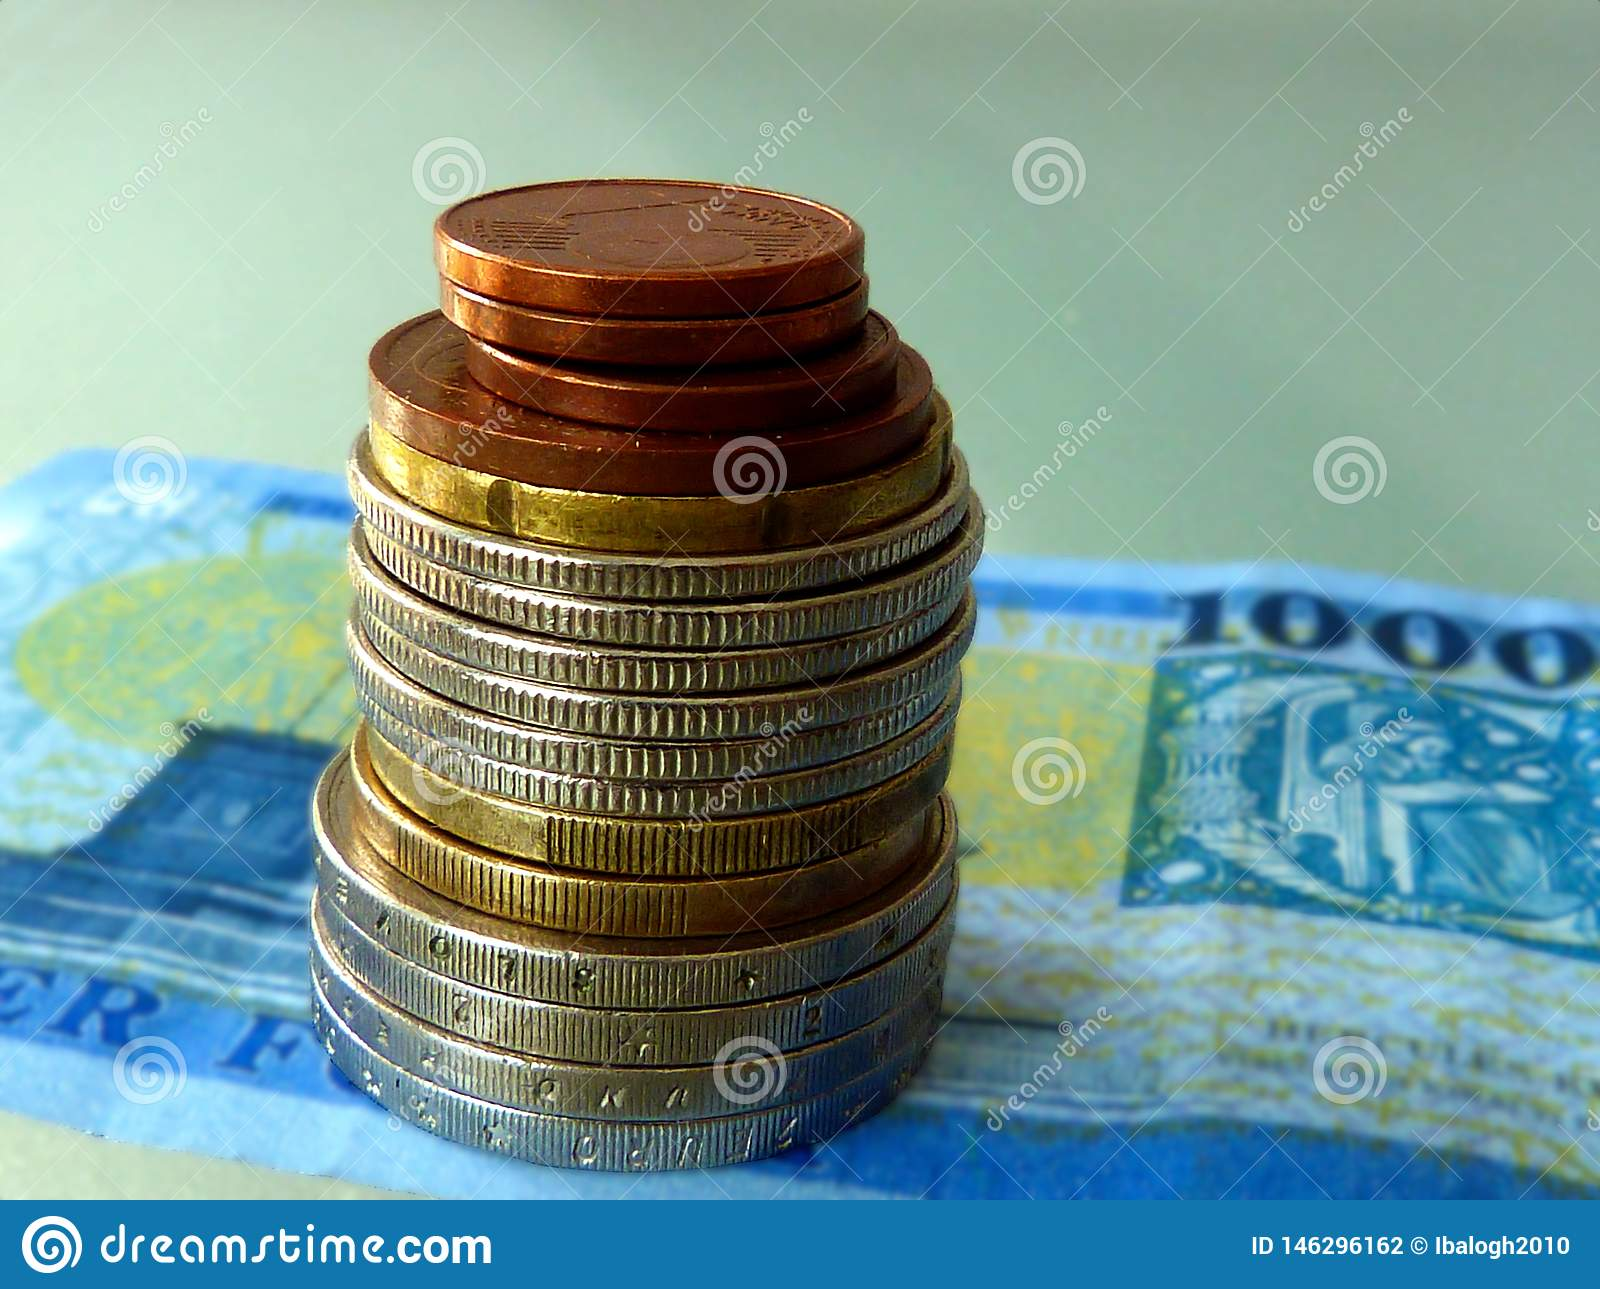 Various nickel and copper color  coins stacked on paper bill